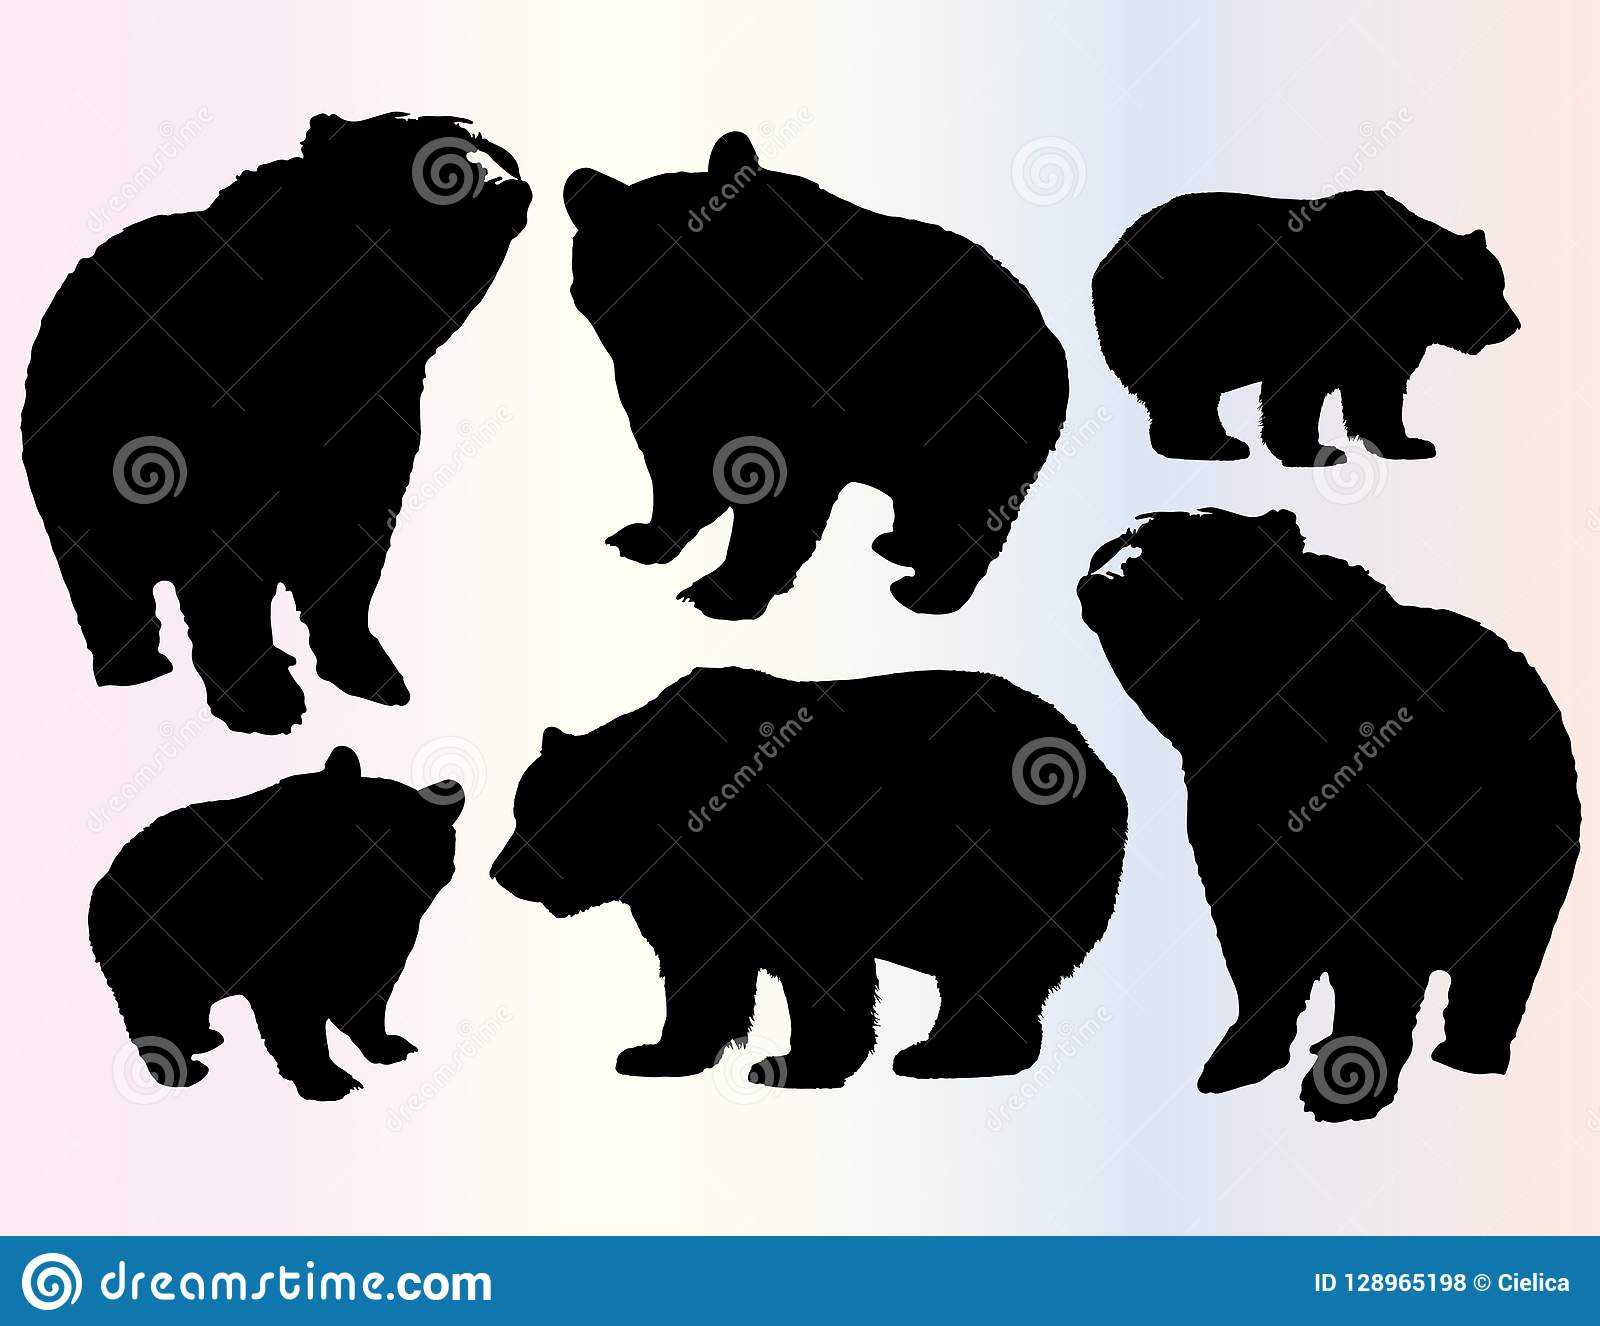 image regarding Printable Bears Schedule identify Bears Vector Clipart Endure Preset Animal Silhouettes Pets